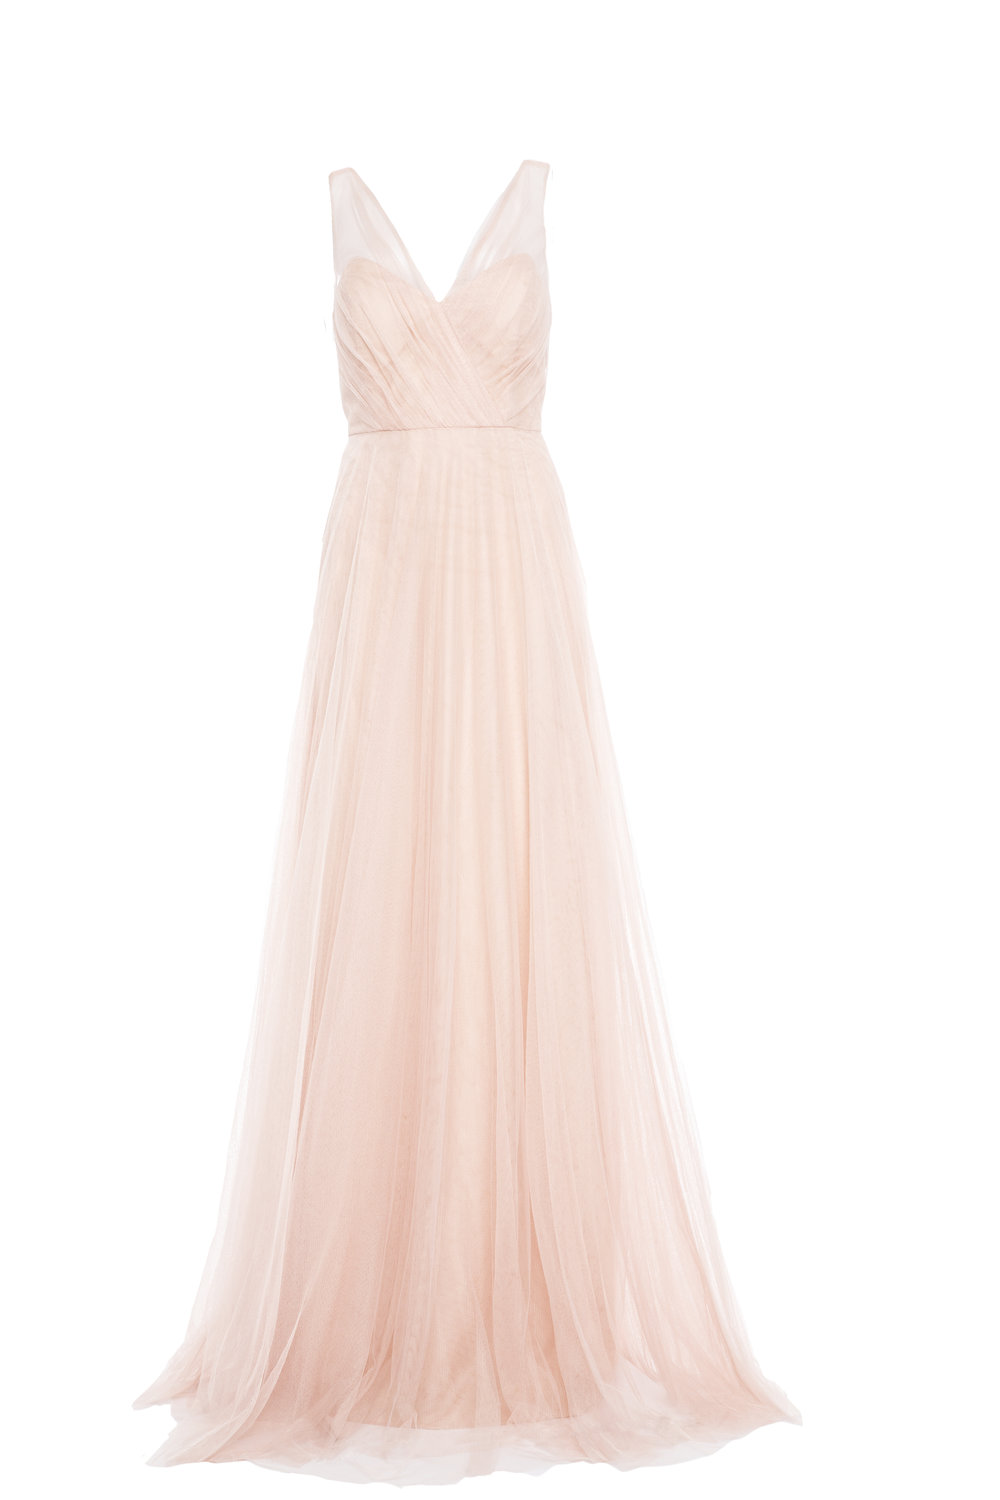 Jenny Yoo Emelie (No Applique) Cameo Pink Soft Tulle